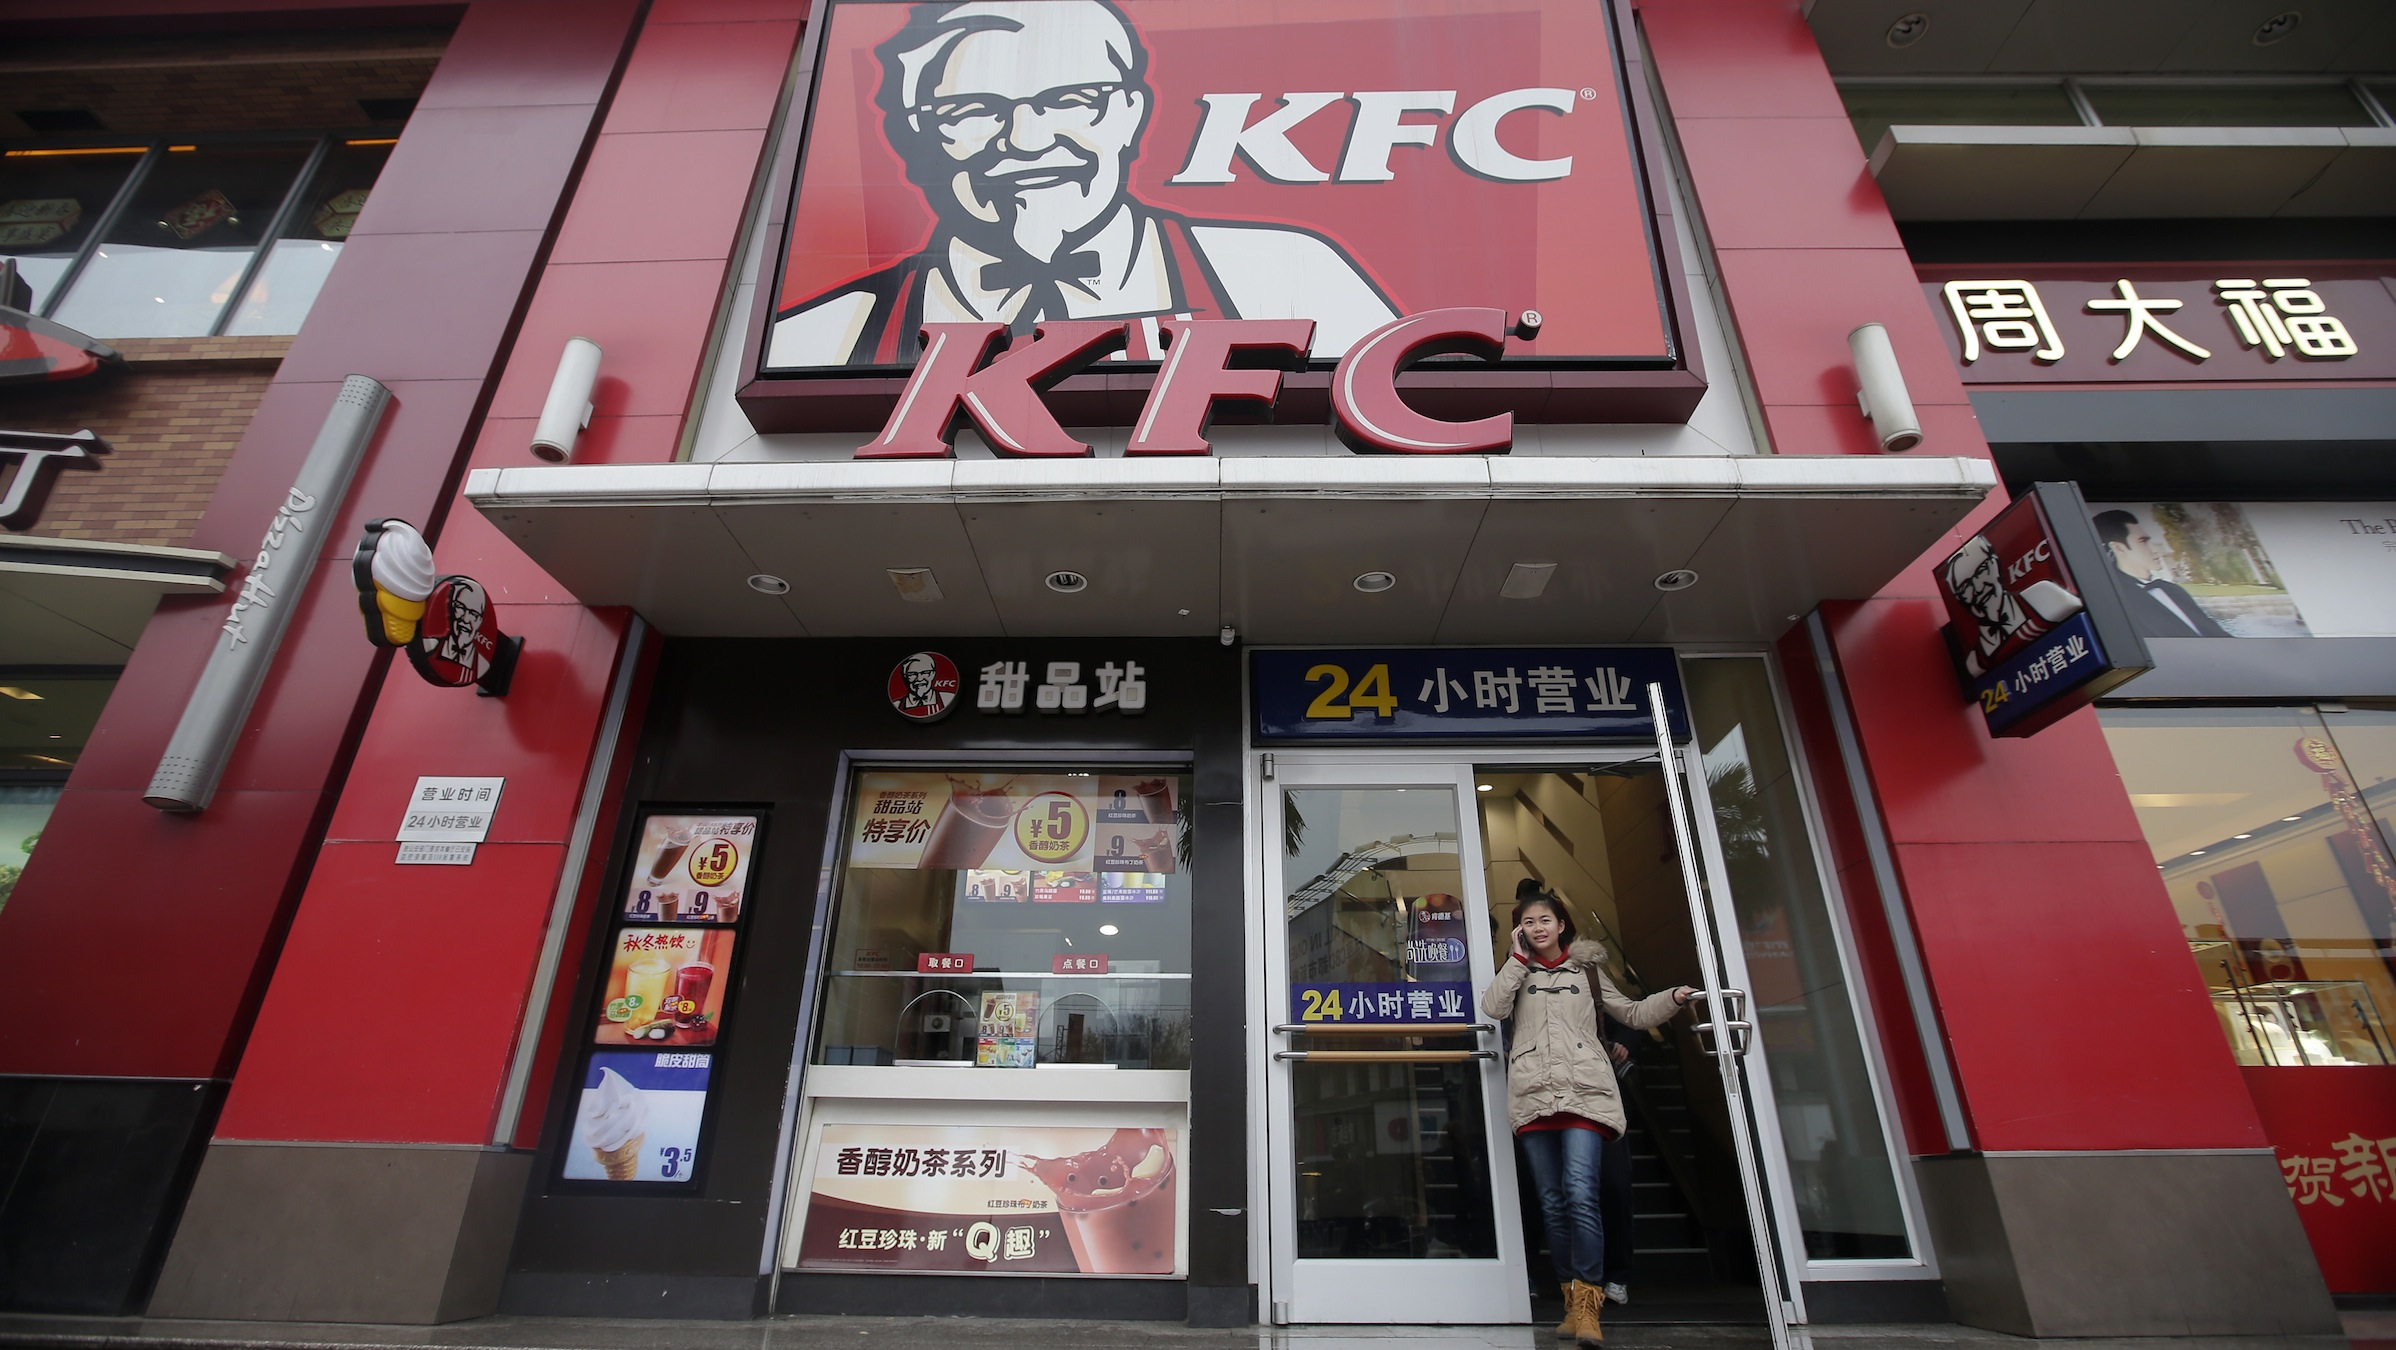 A woman walks out from a KFC restaurant as she speaks on her mobile phone in Wuhan, Hubei province, February 5, 2013. KFC parent Yum Brands Inc warned on Monday that it expects 2013 earnings to shrink rather than grow as it struggles to manage a food safety scare in China, and sees no return to growth in restaurant sales there until the fourth quarter. REUTERS/Stringer (CHINA - Tags: BUSINESS FOOD) CHINA OUT. NO COMMERCIAL OR EDITORIAL SALES IN CHINA - RTR3DD7F